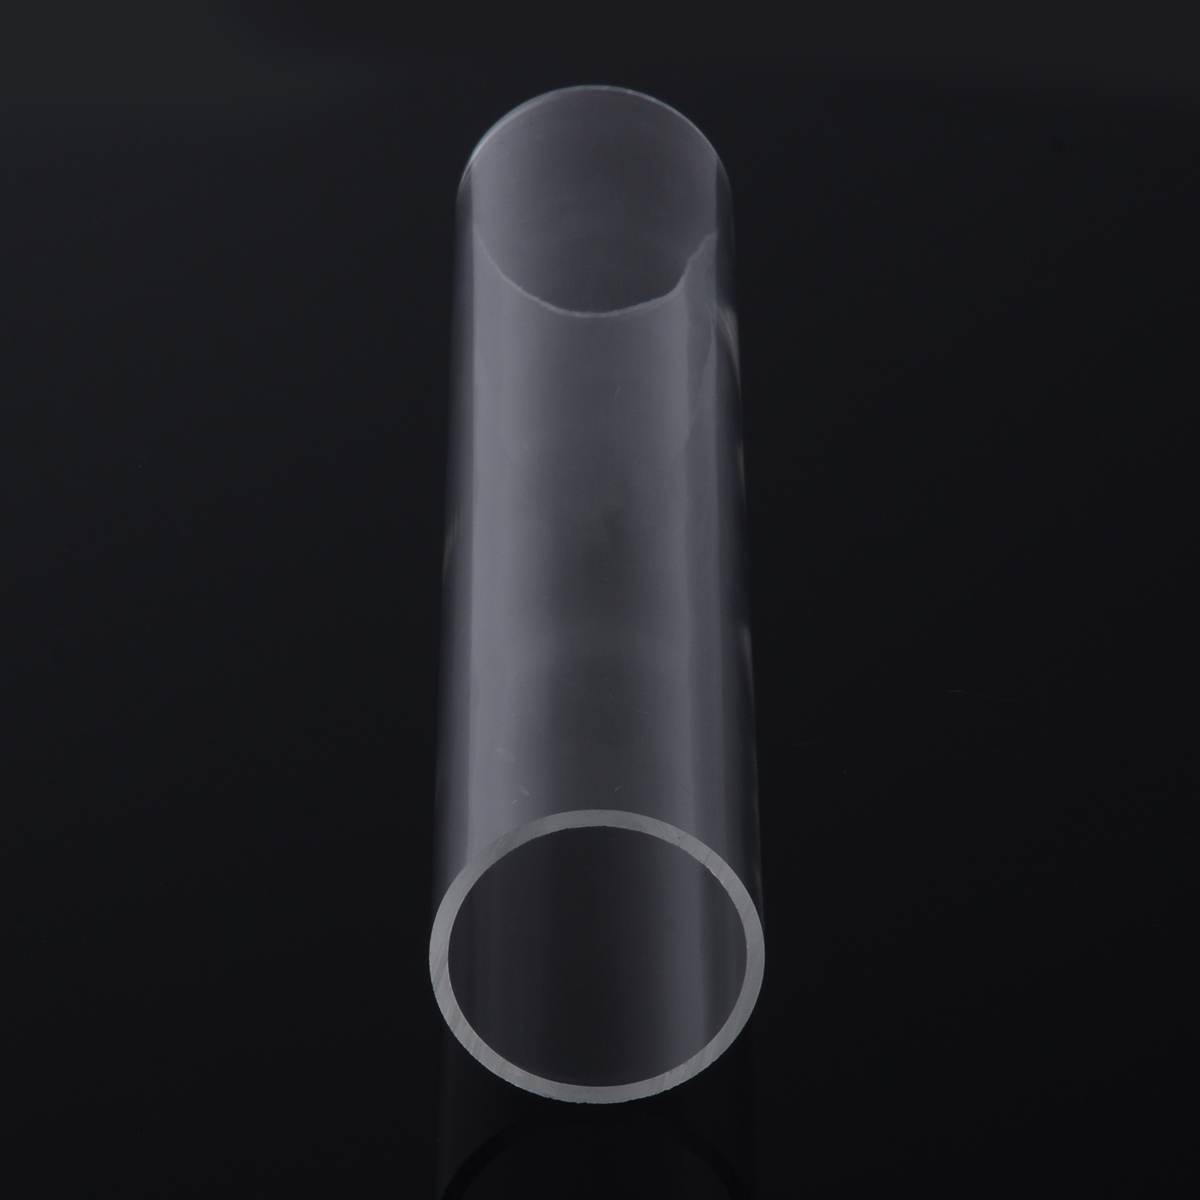 New 1Pcs Transparent Acrylic Plexiglass Lucite Tube 50mm OD 43.75mm ID For 300mm Length Tool Parts Practical